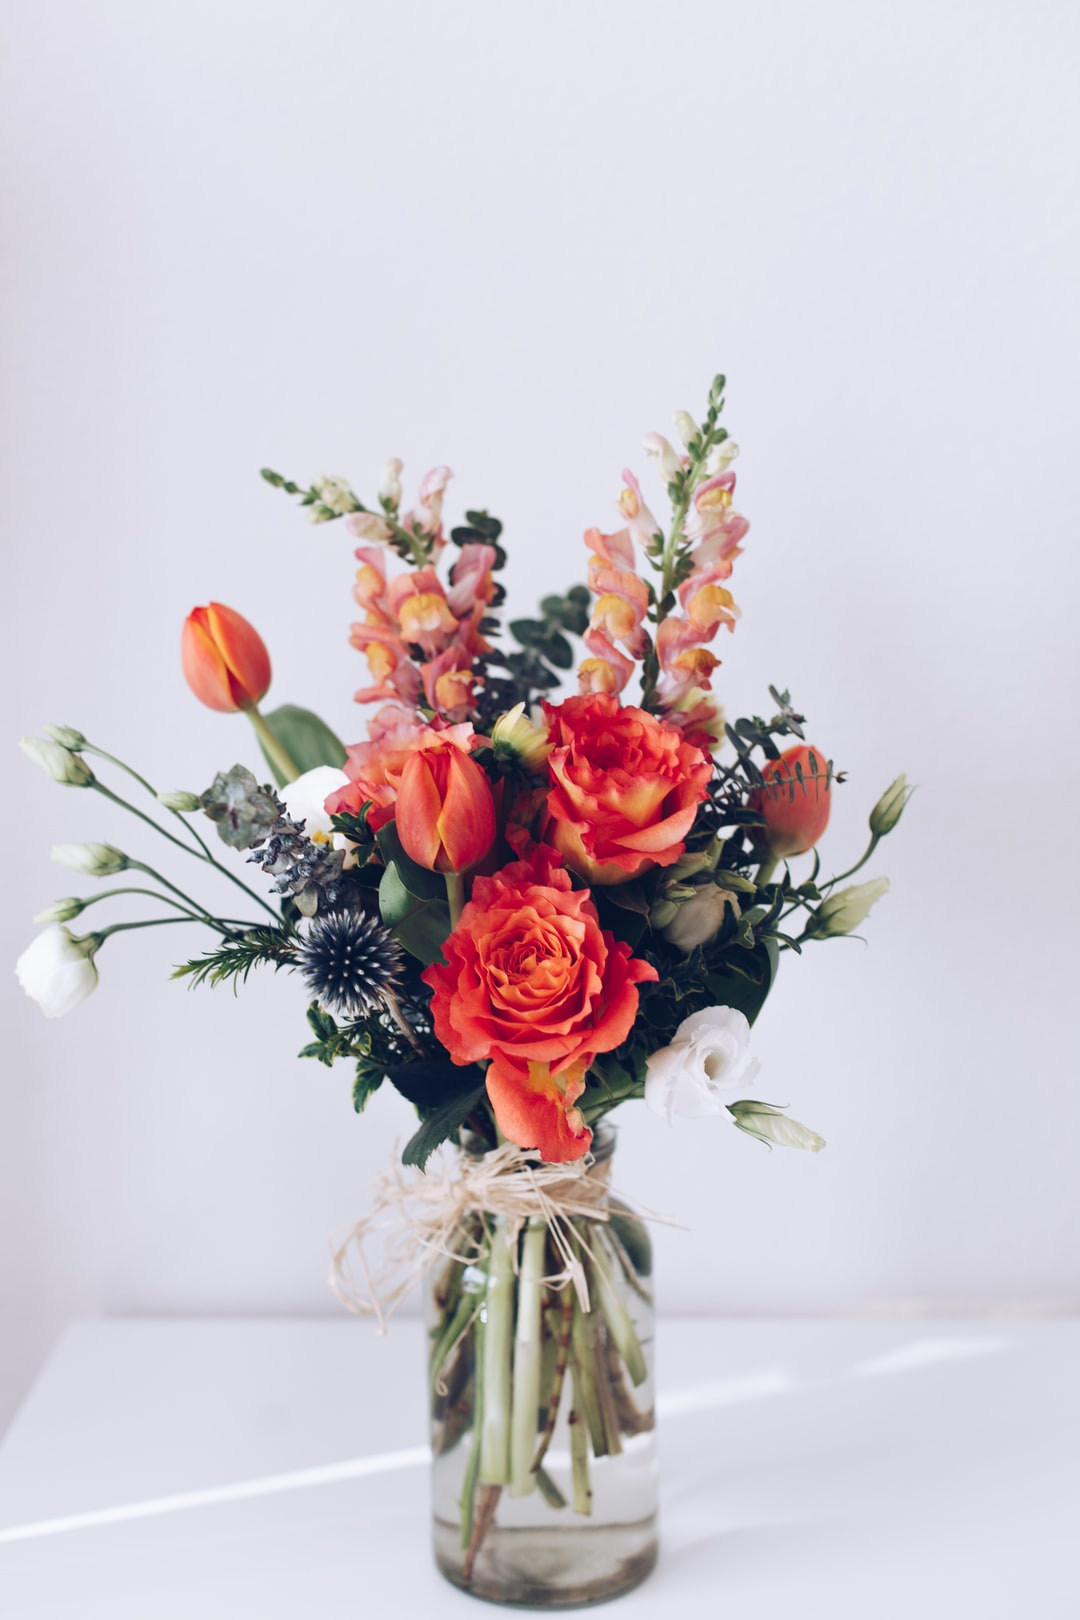 500 bouquet pictures hd download free images on unsplash izmirmasajfo